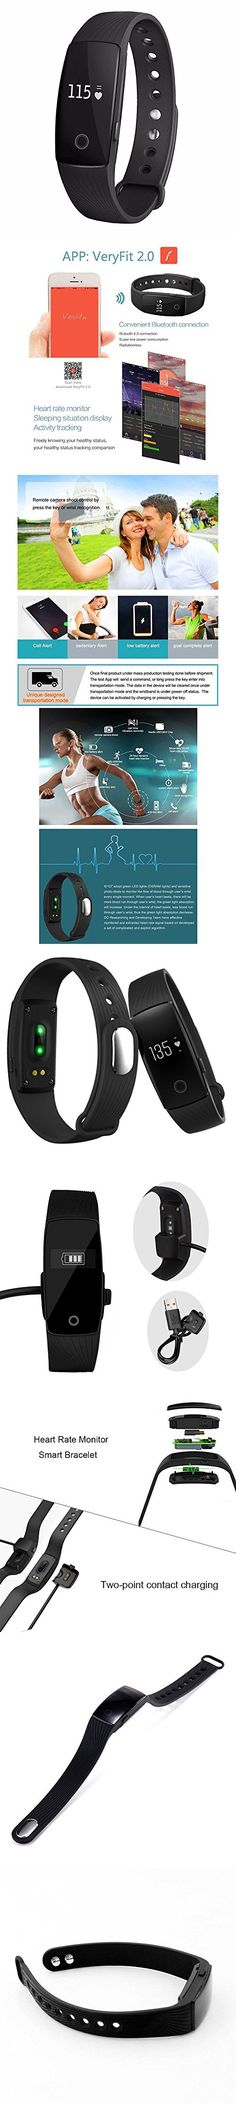 Witmood Smart Bracelet Heart Rate Monitor Smartband Pedometer Sport Fitness Tracker Wristband Watch For iPhone Samsung IOS Android Smart Phones (Black)